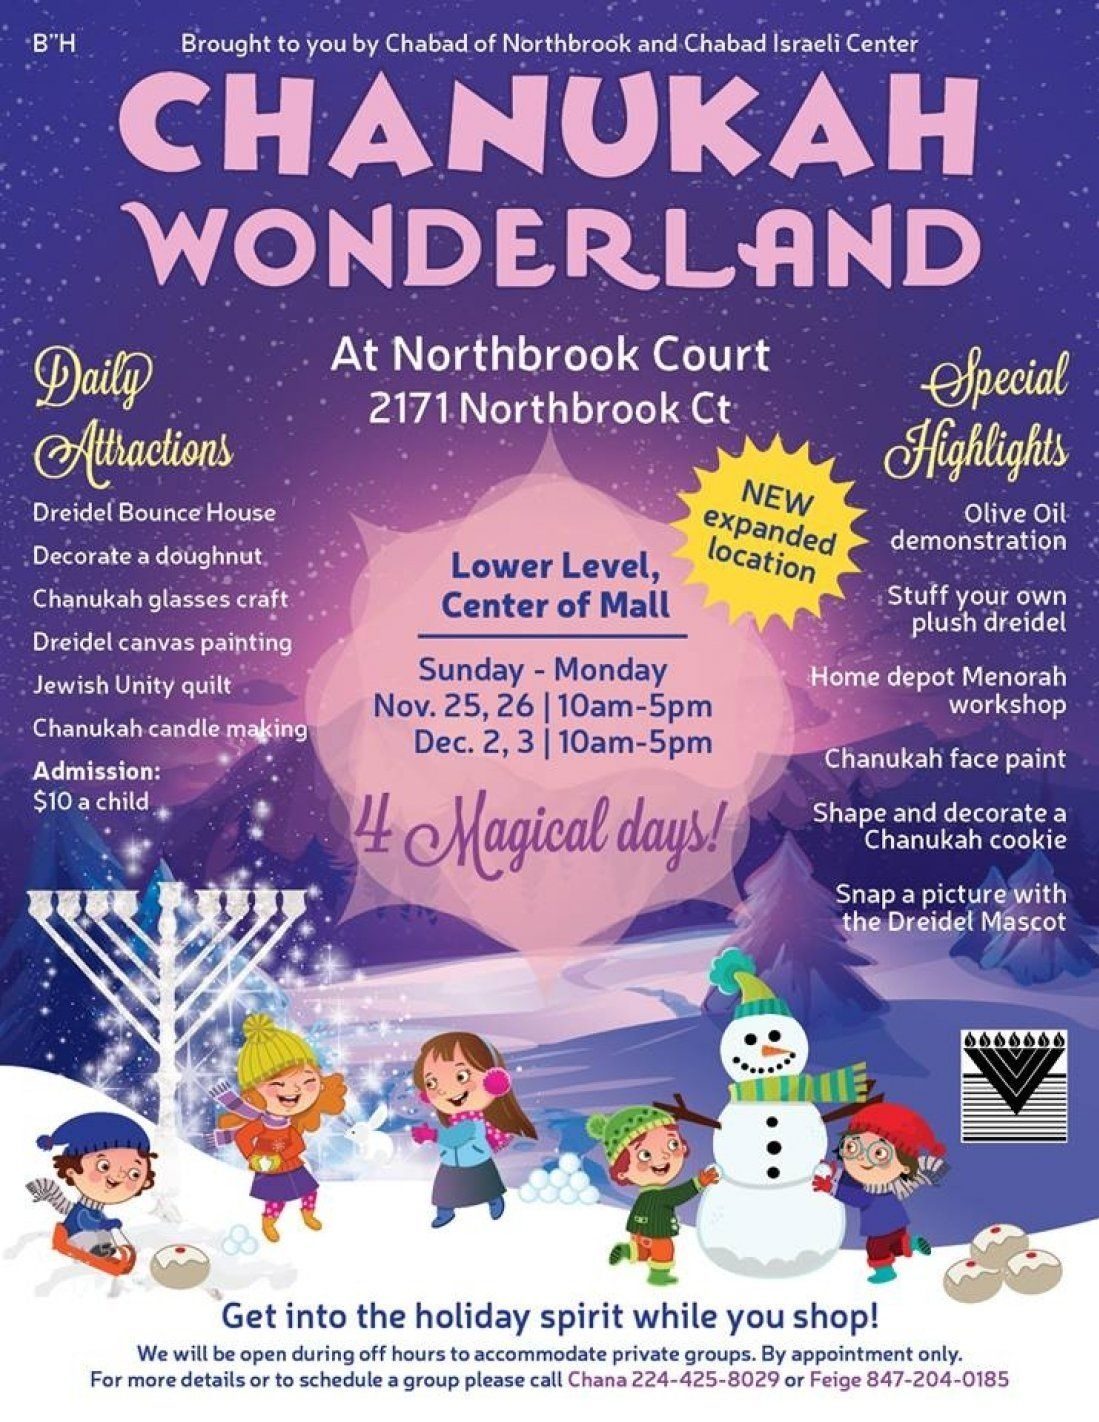 Chanukah Wonderland - December, 2018